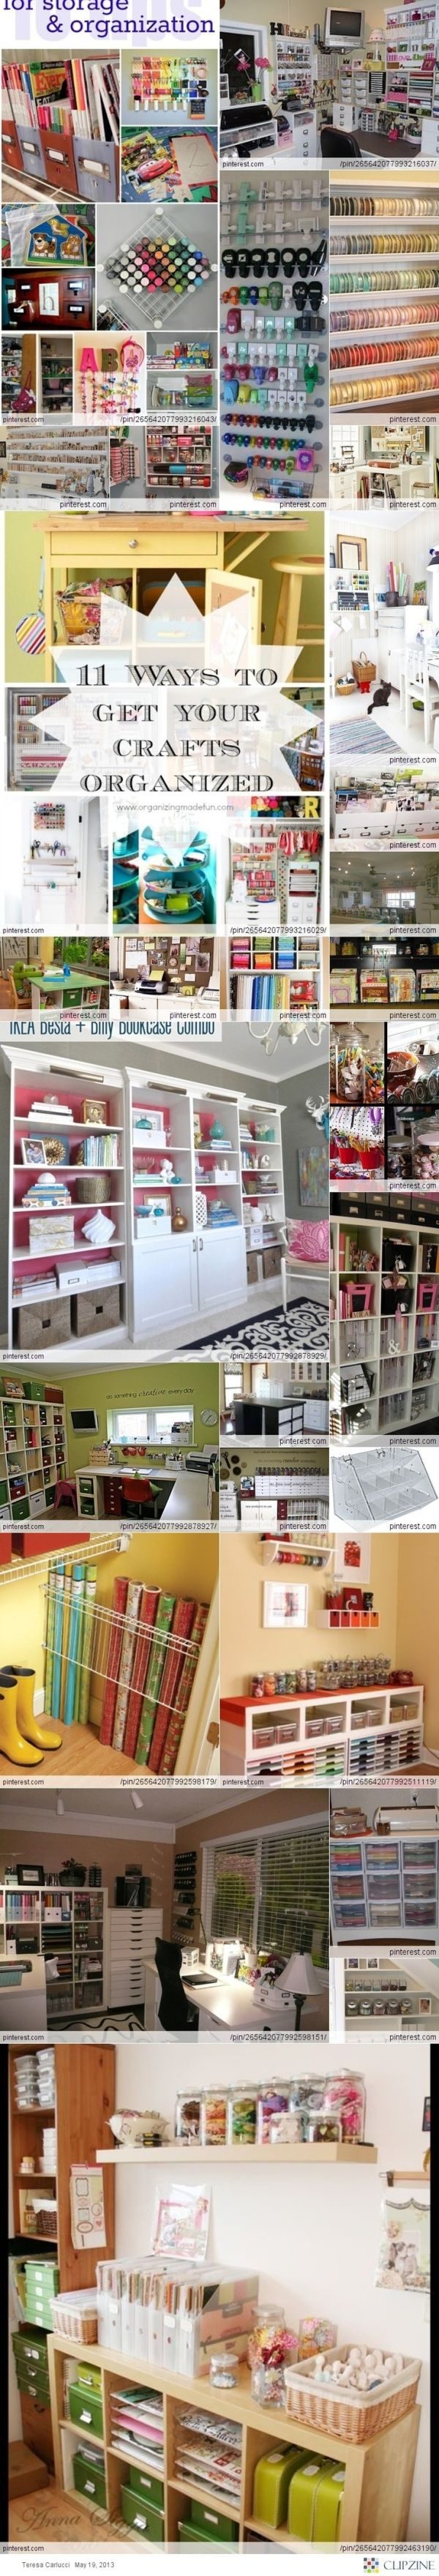 Scrapbook paper examples - Craft Scrapbook Room Inspiration For Getting Organized